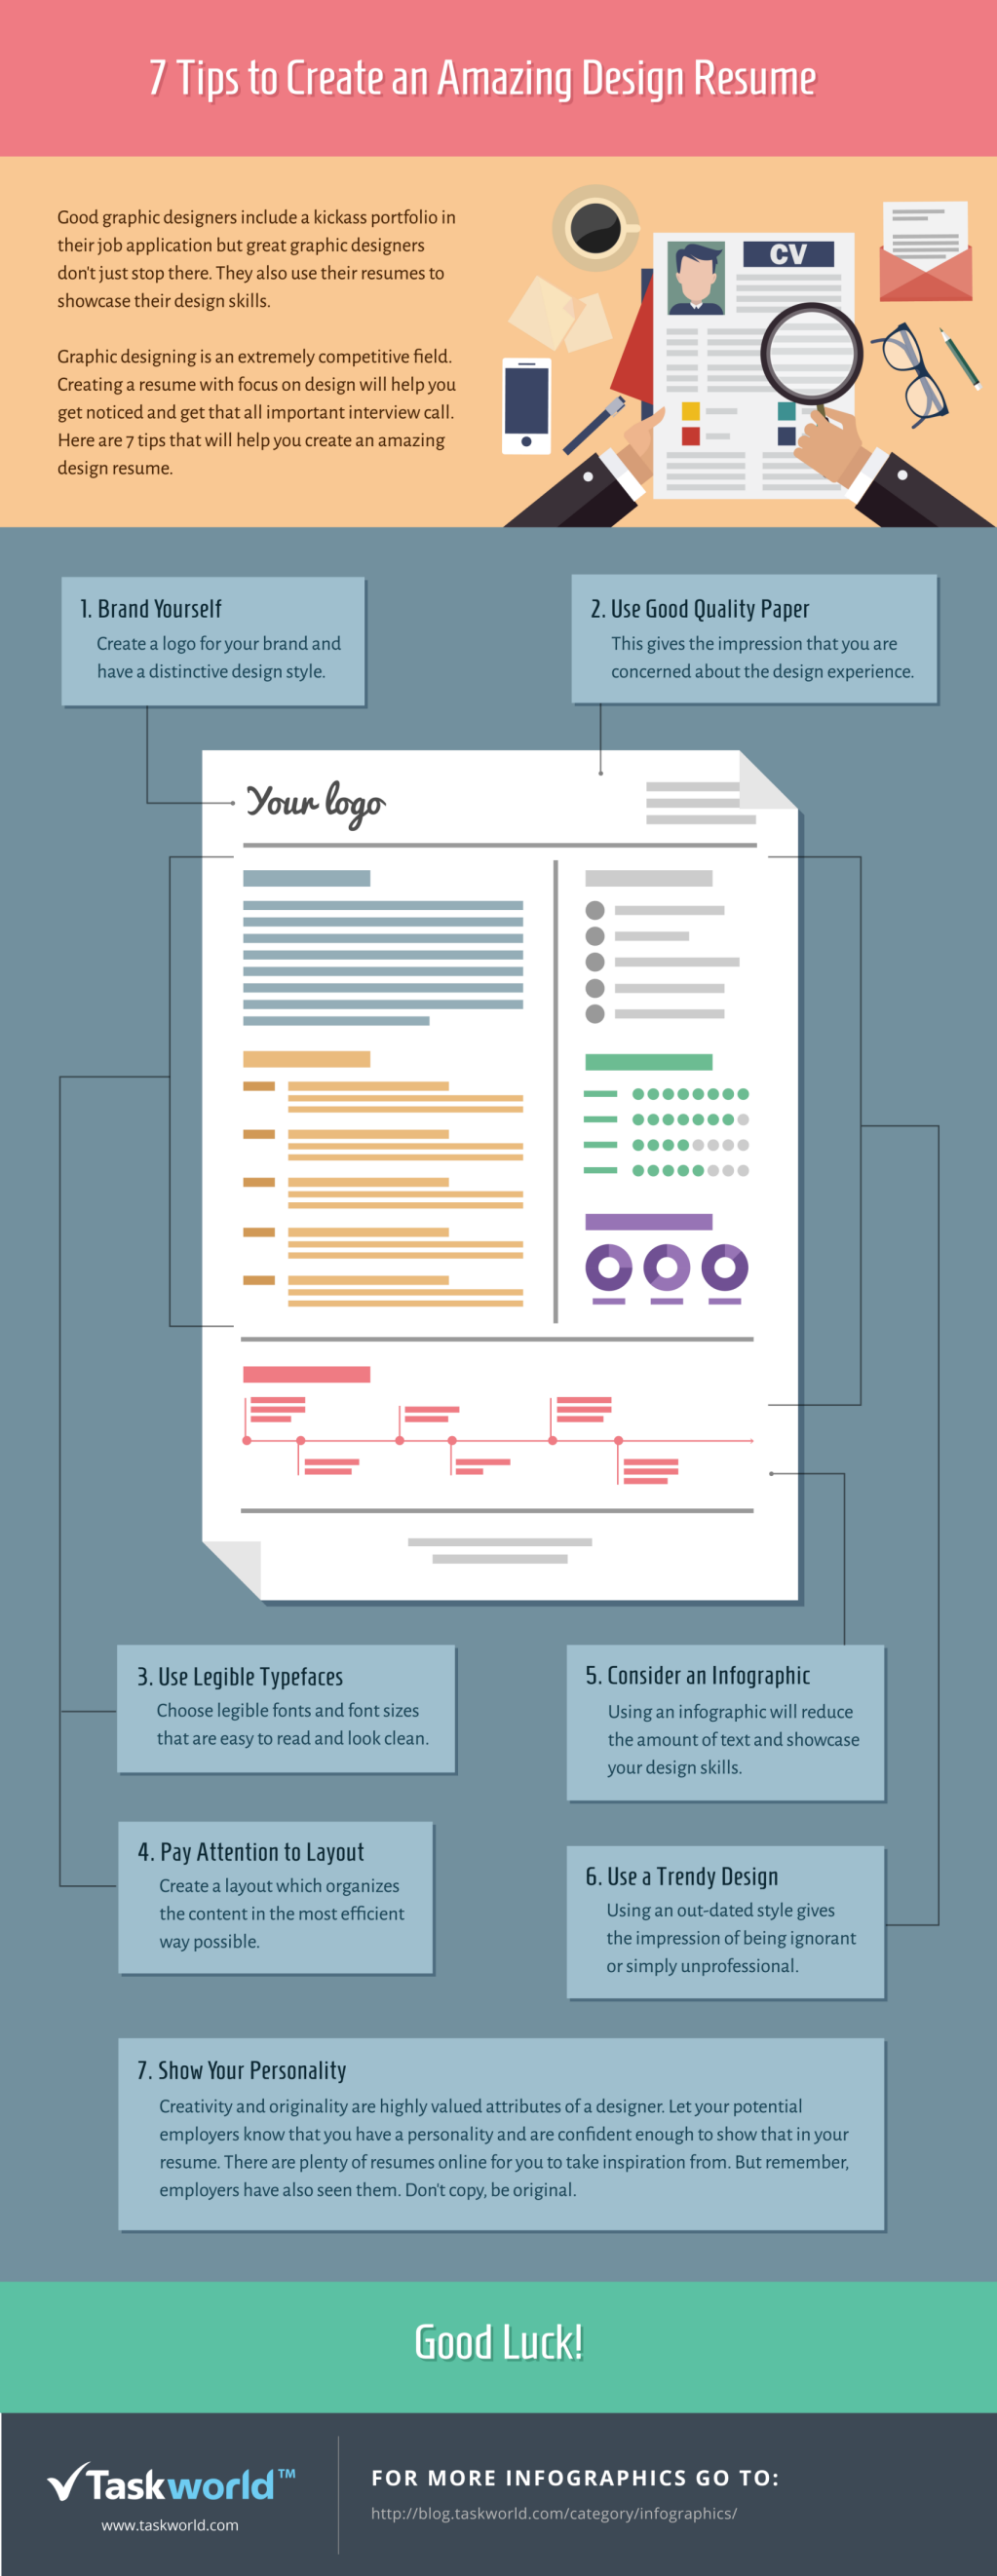 7 Tips to Create an Amazing Design Resume Infographic -  http://elearninginfographics.